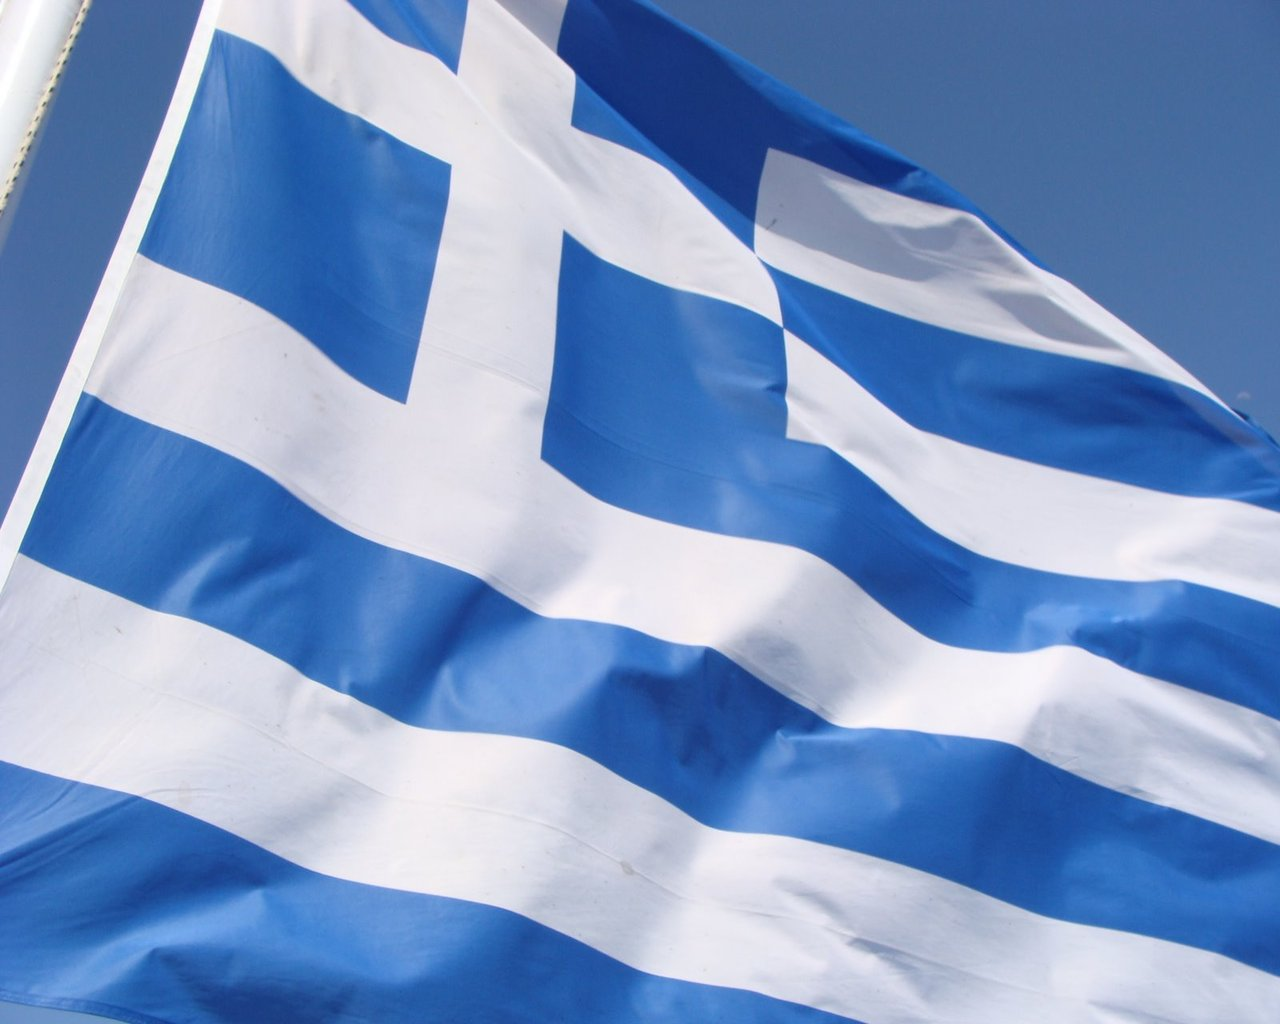 Download Greece wallpaper greece flag 1280x1024